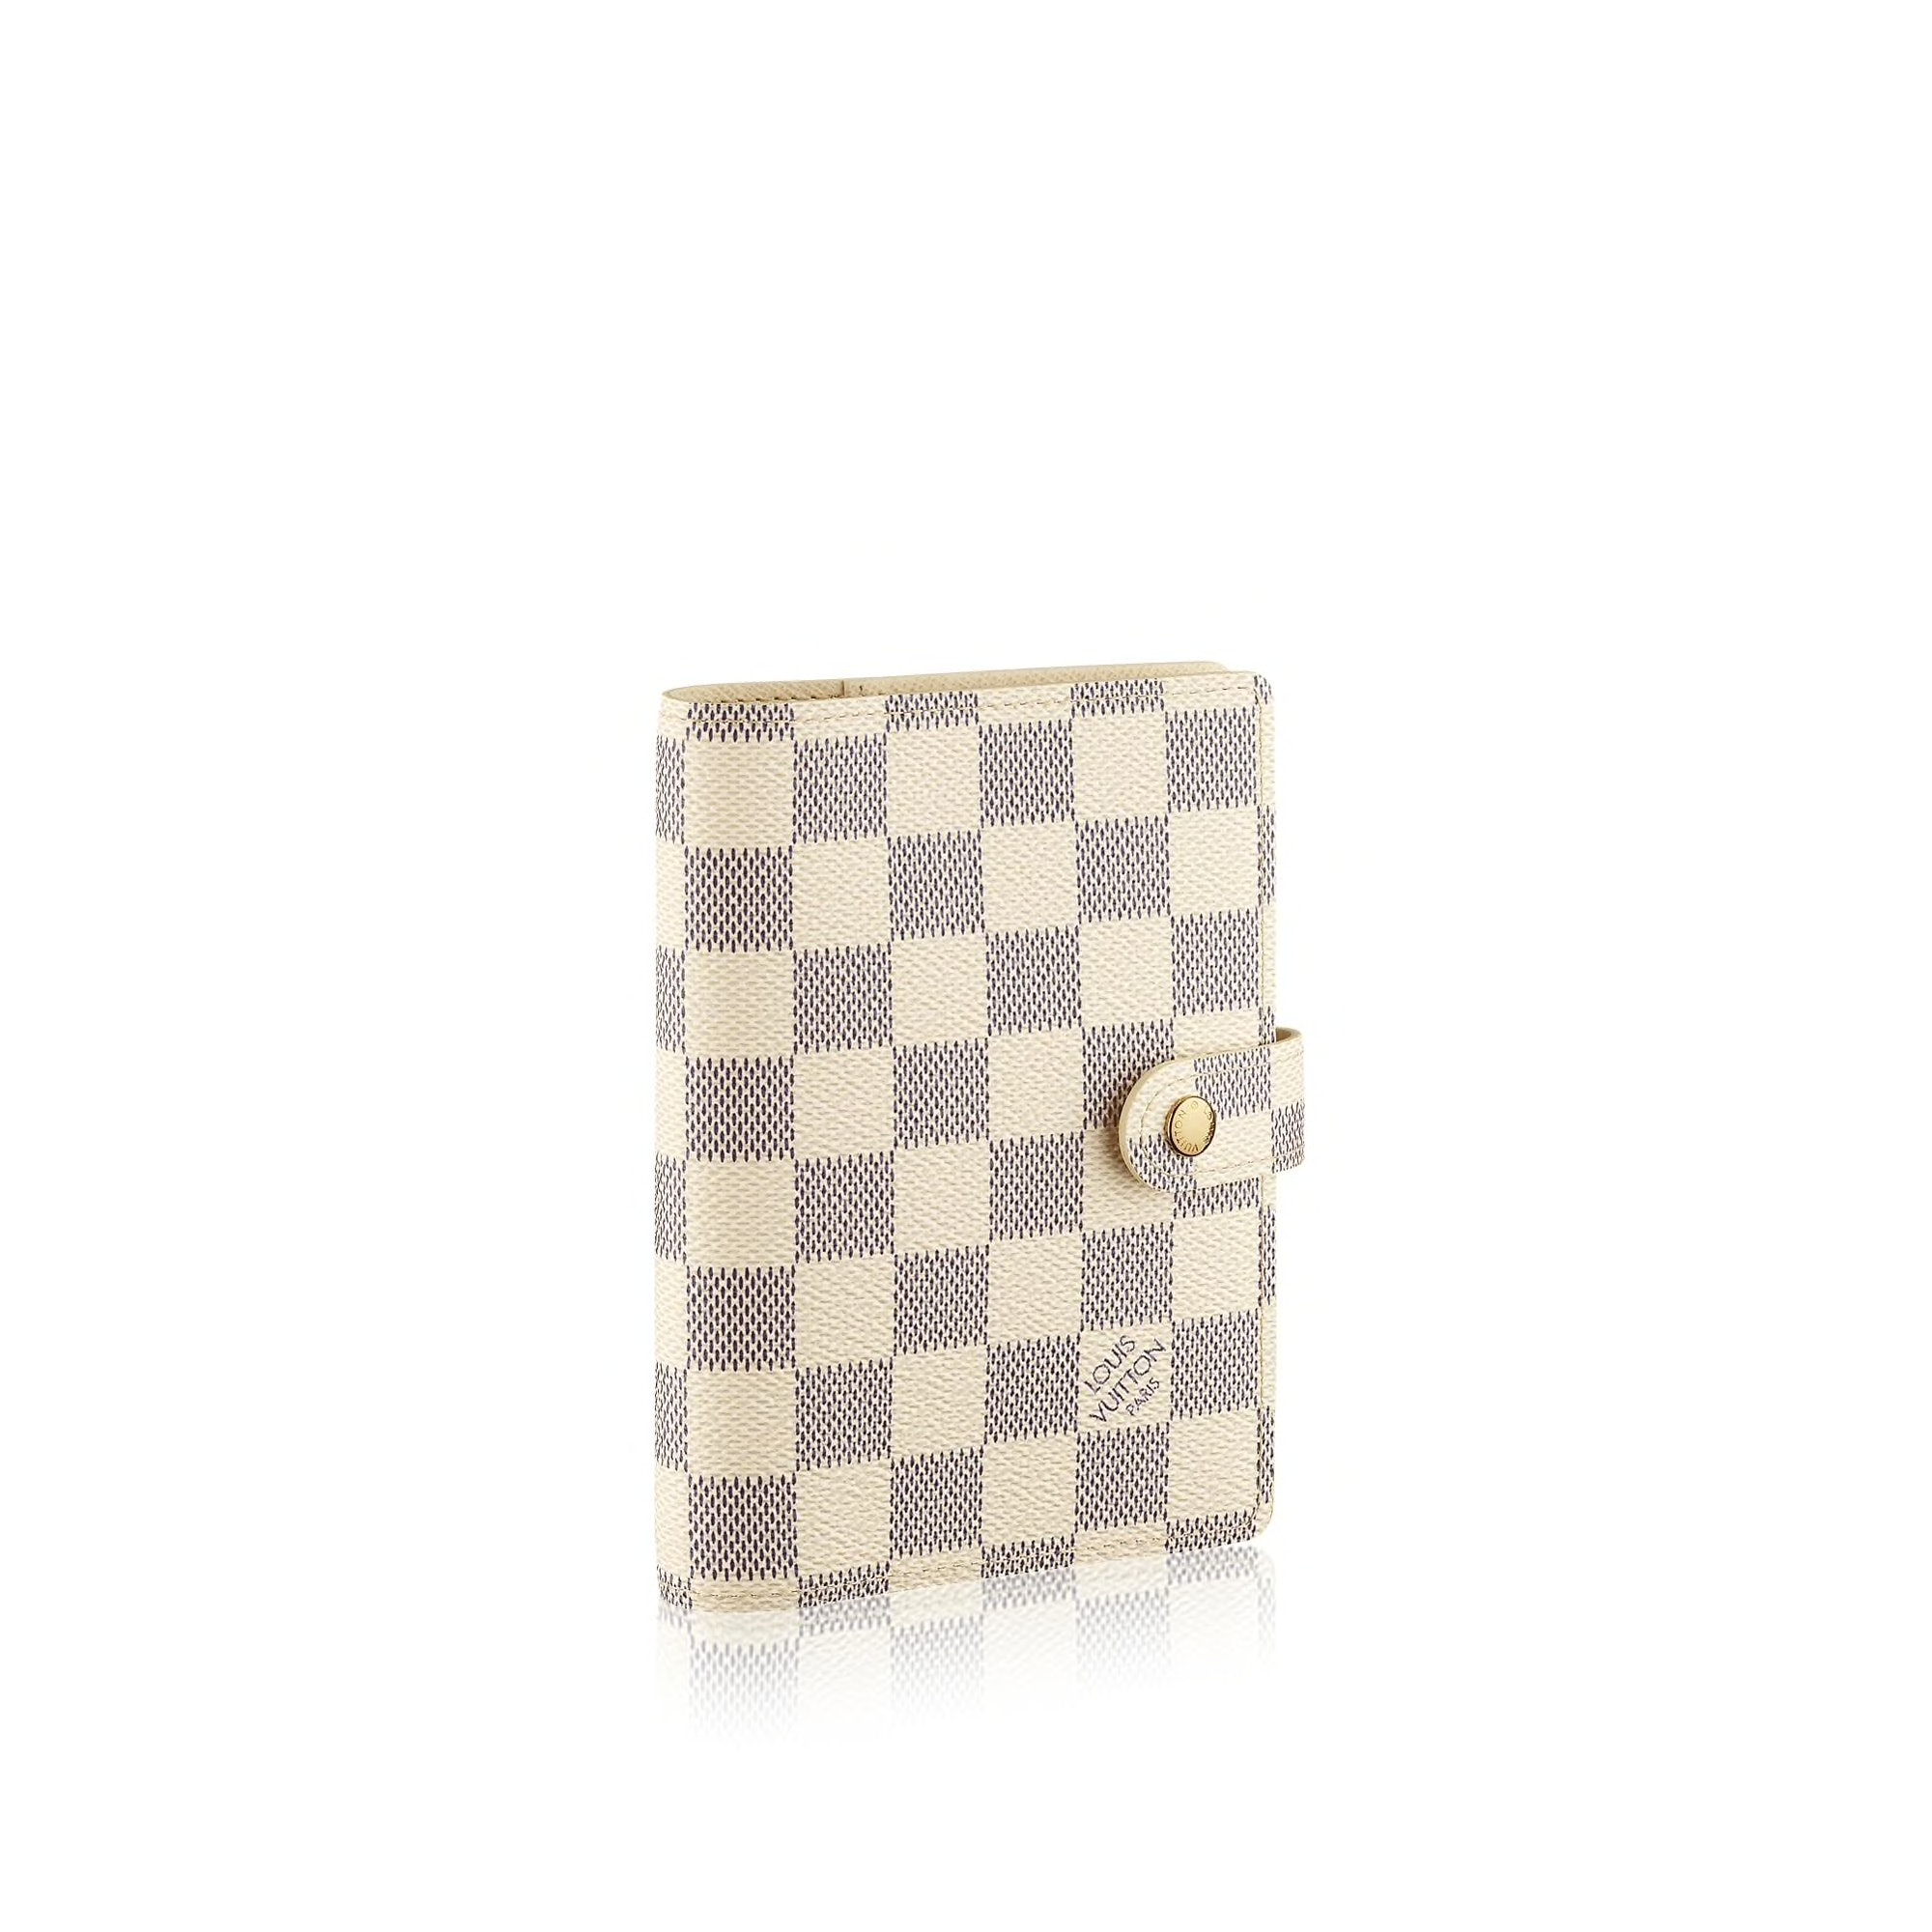 Louis Vuitton Small Ring Agenda Cover Damier Azur White Blue